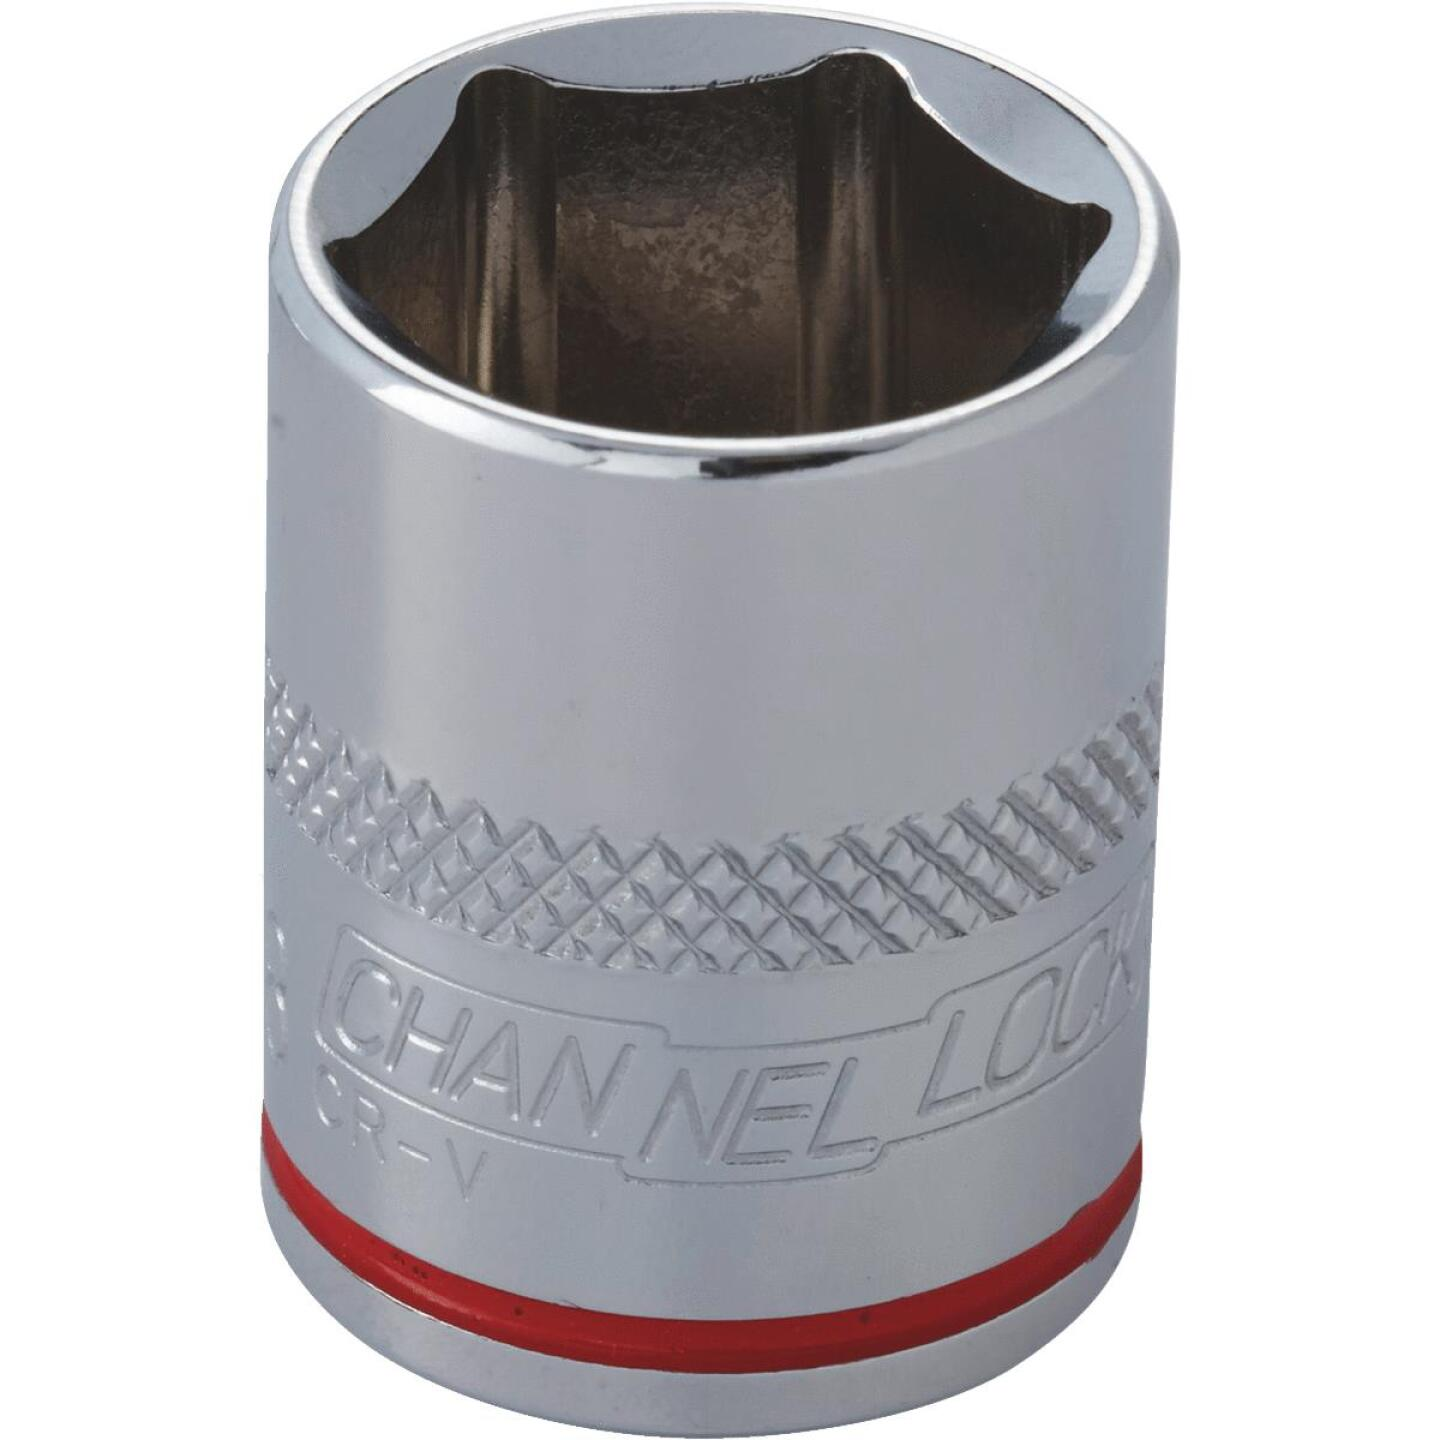 Channellock 3/8 In. Drive 5/8 In. 6-Point Shallow Standard Socket Image 2